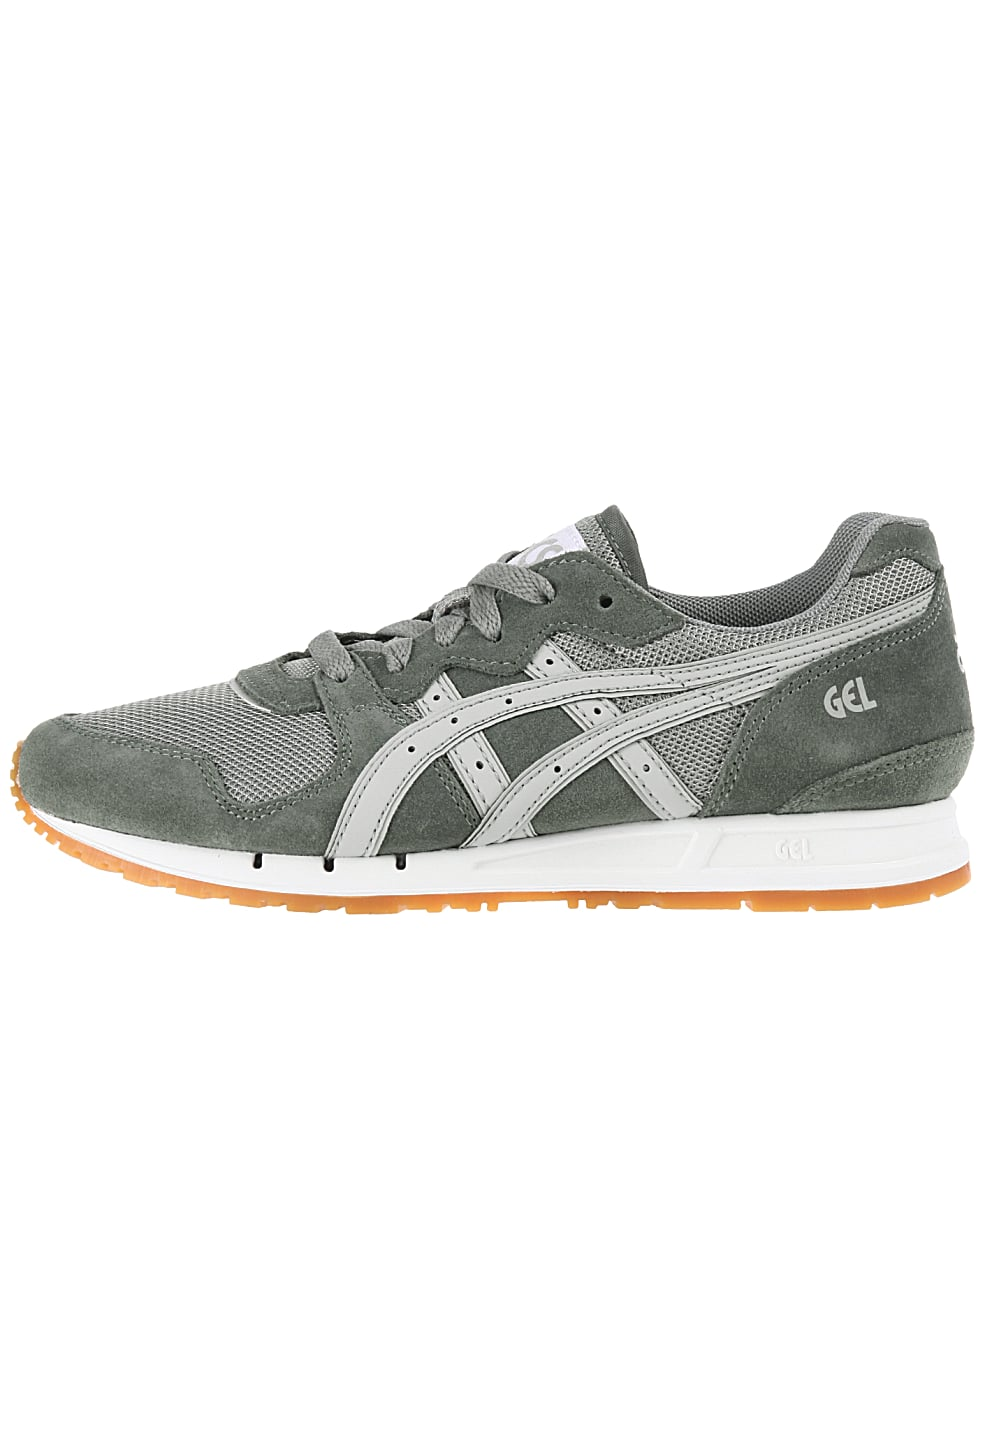 ASICS Tiger Gel-Movimentum - Sneaker für Damen - Grün - Planet Sports